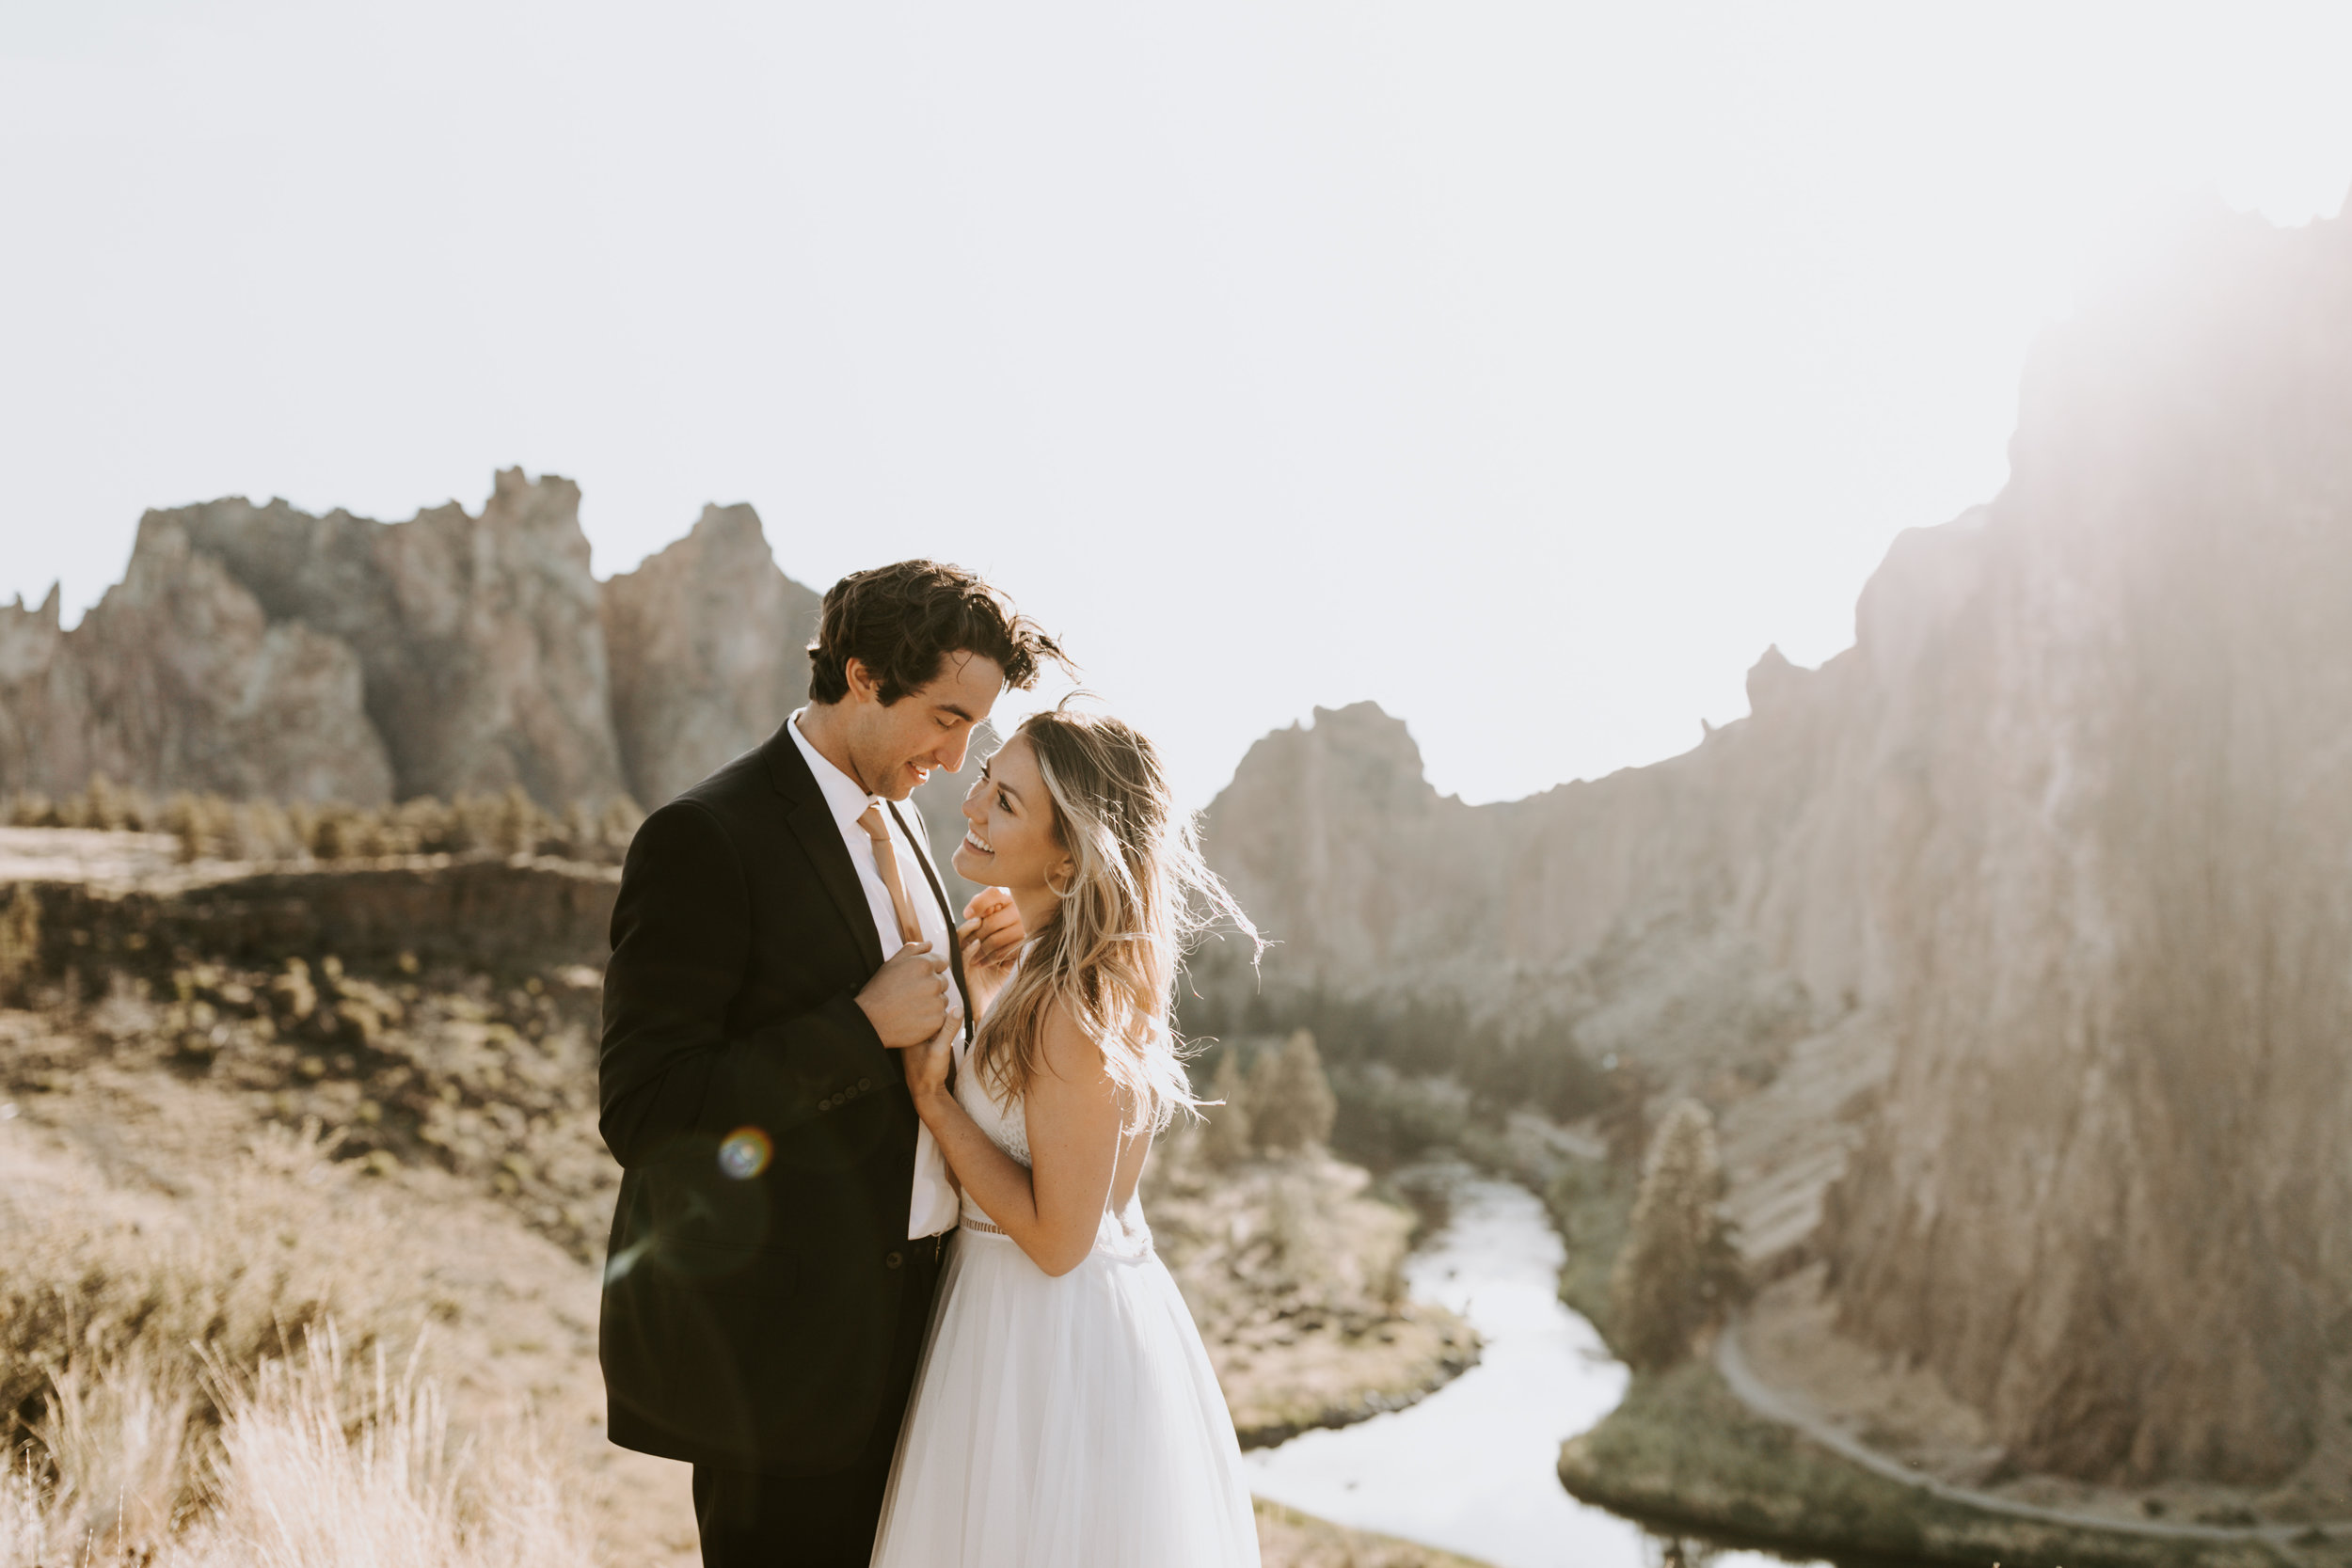 Bend OR Engagement Photos | Christina & Justin Emily Magers Photography-130.jpg